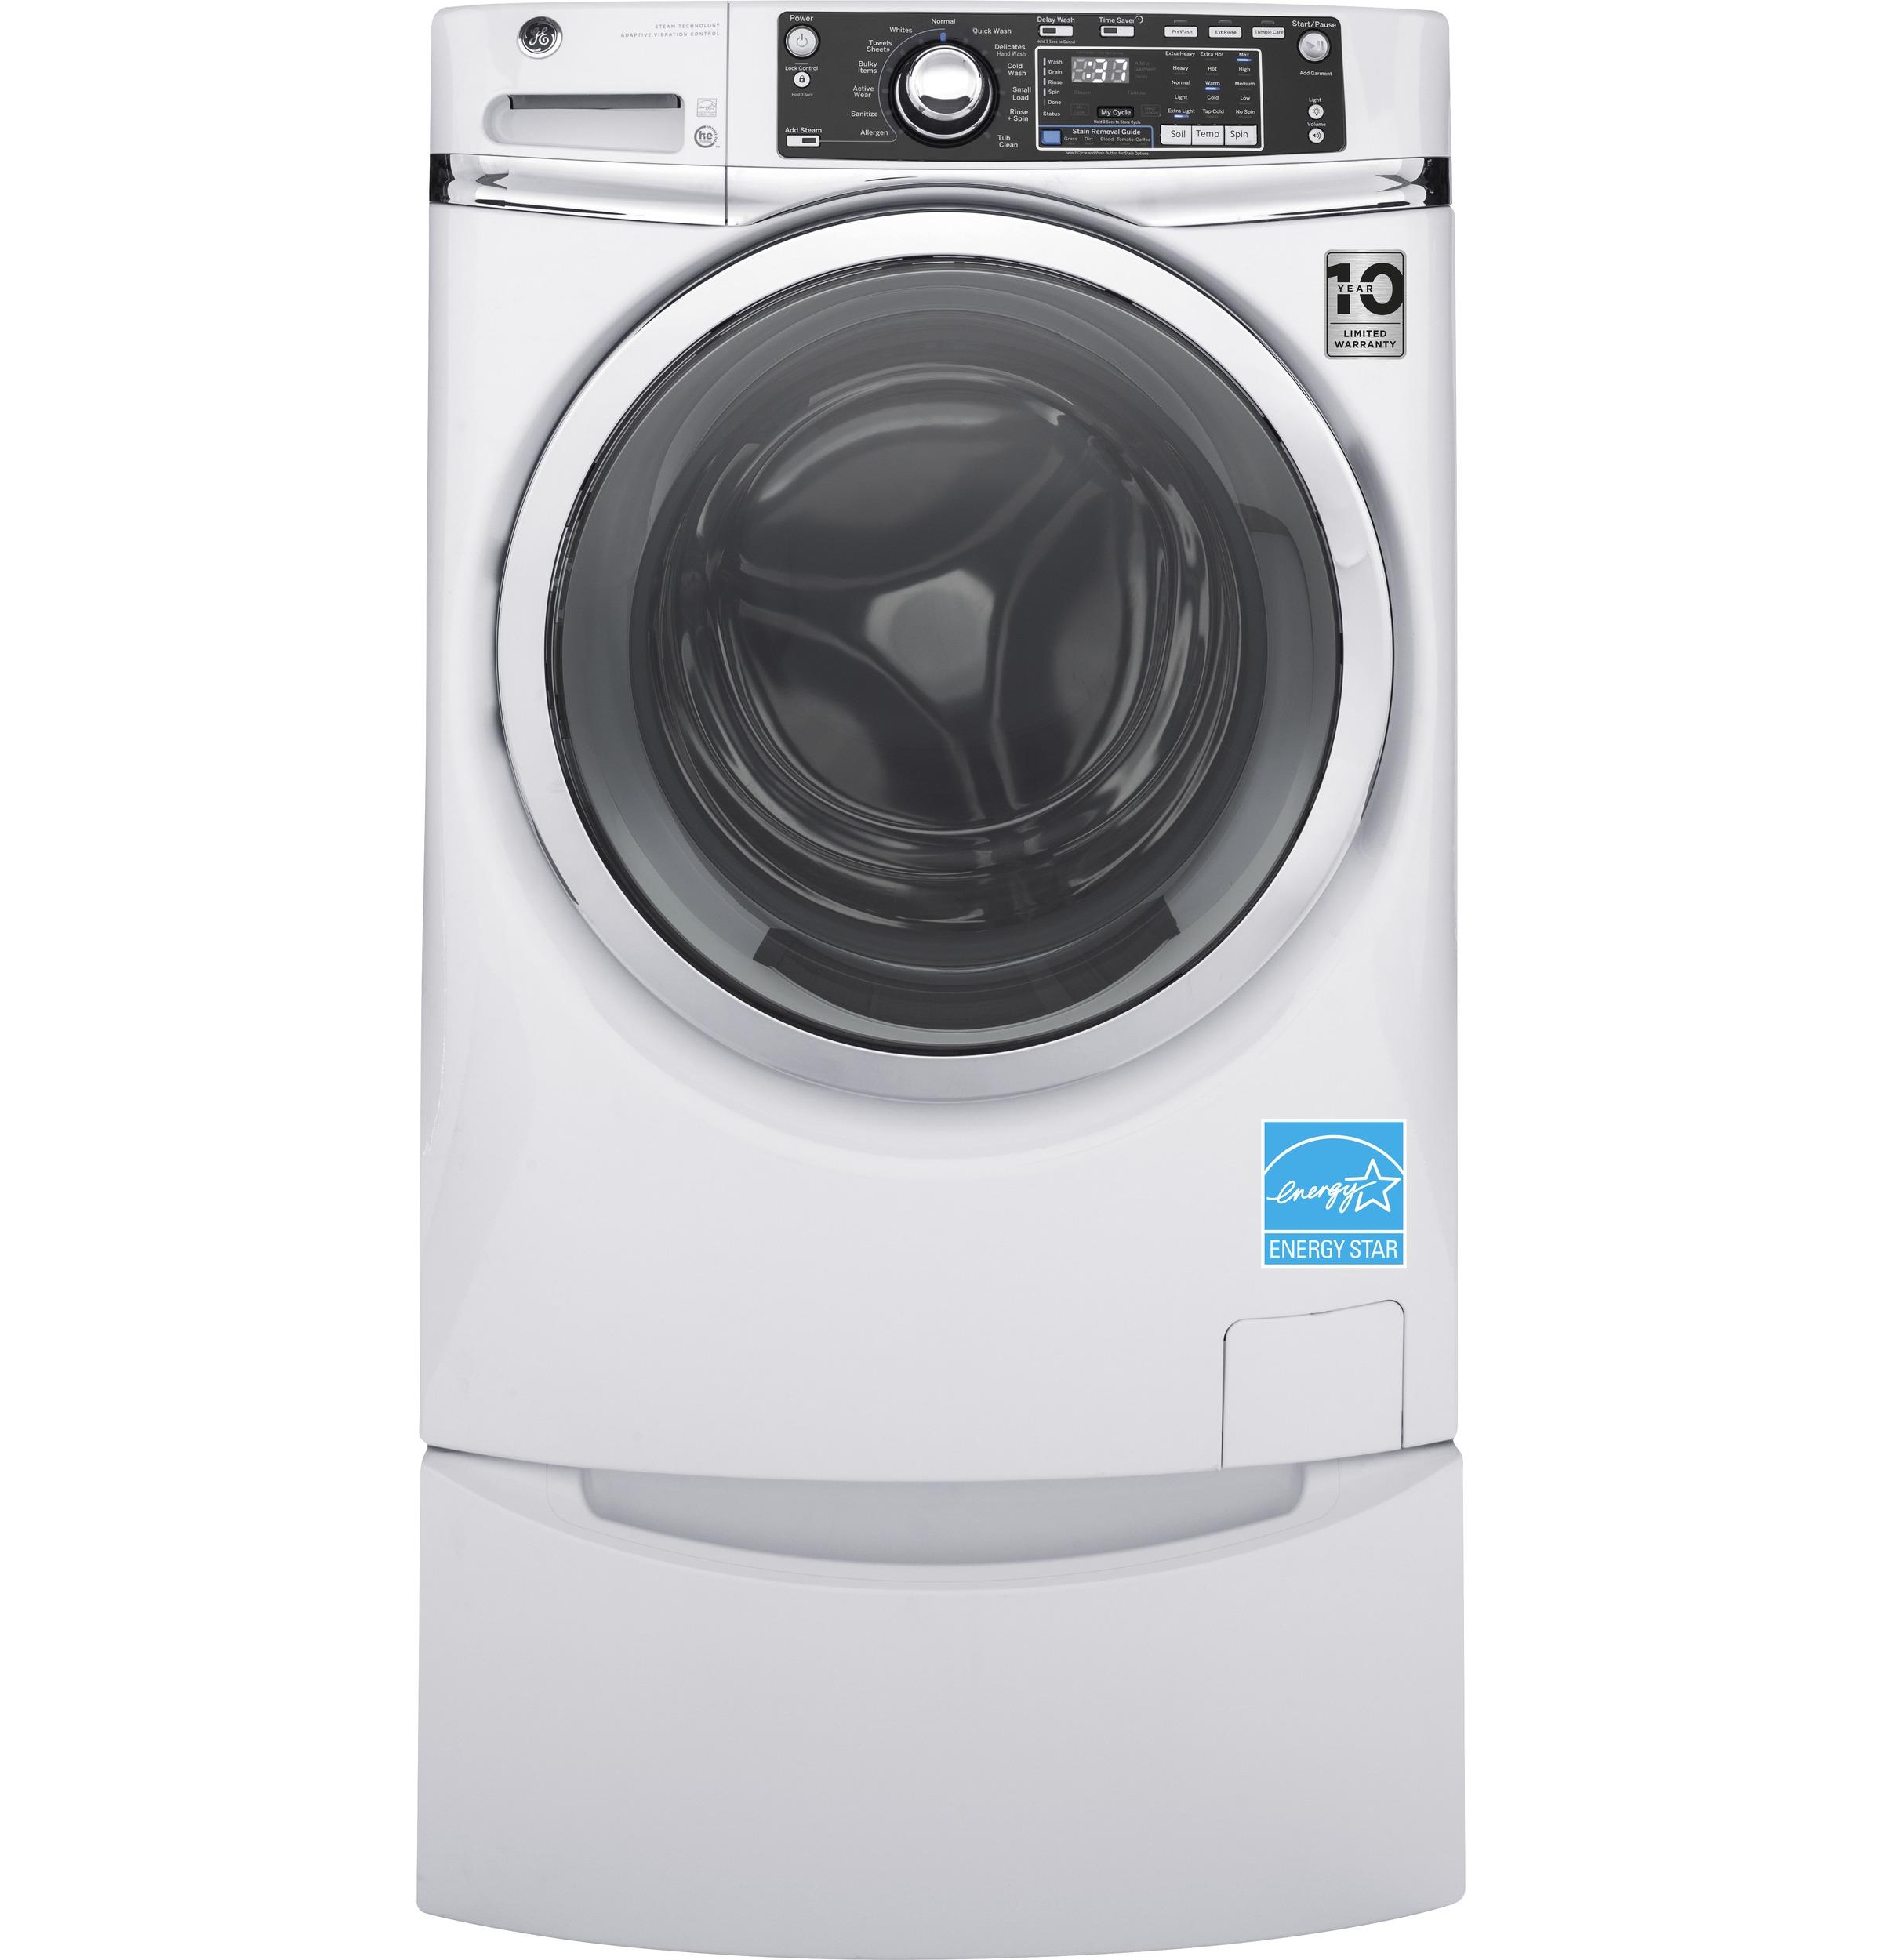 GE(R) ENERGY STAR(R) 4.9 DOE cu. ft. capacity Front Load washer with steam  White